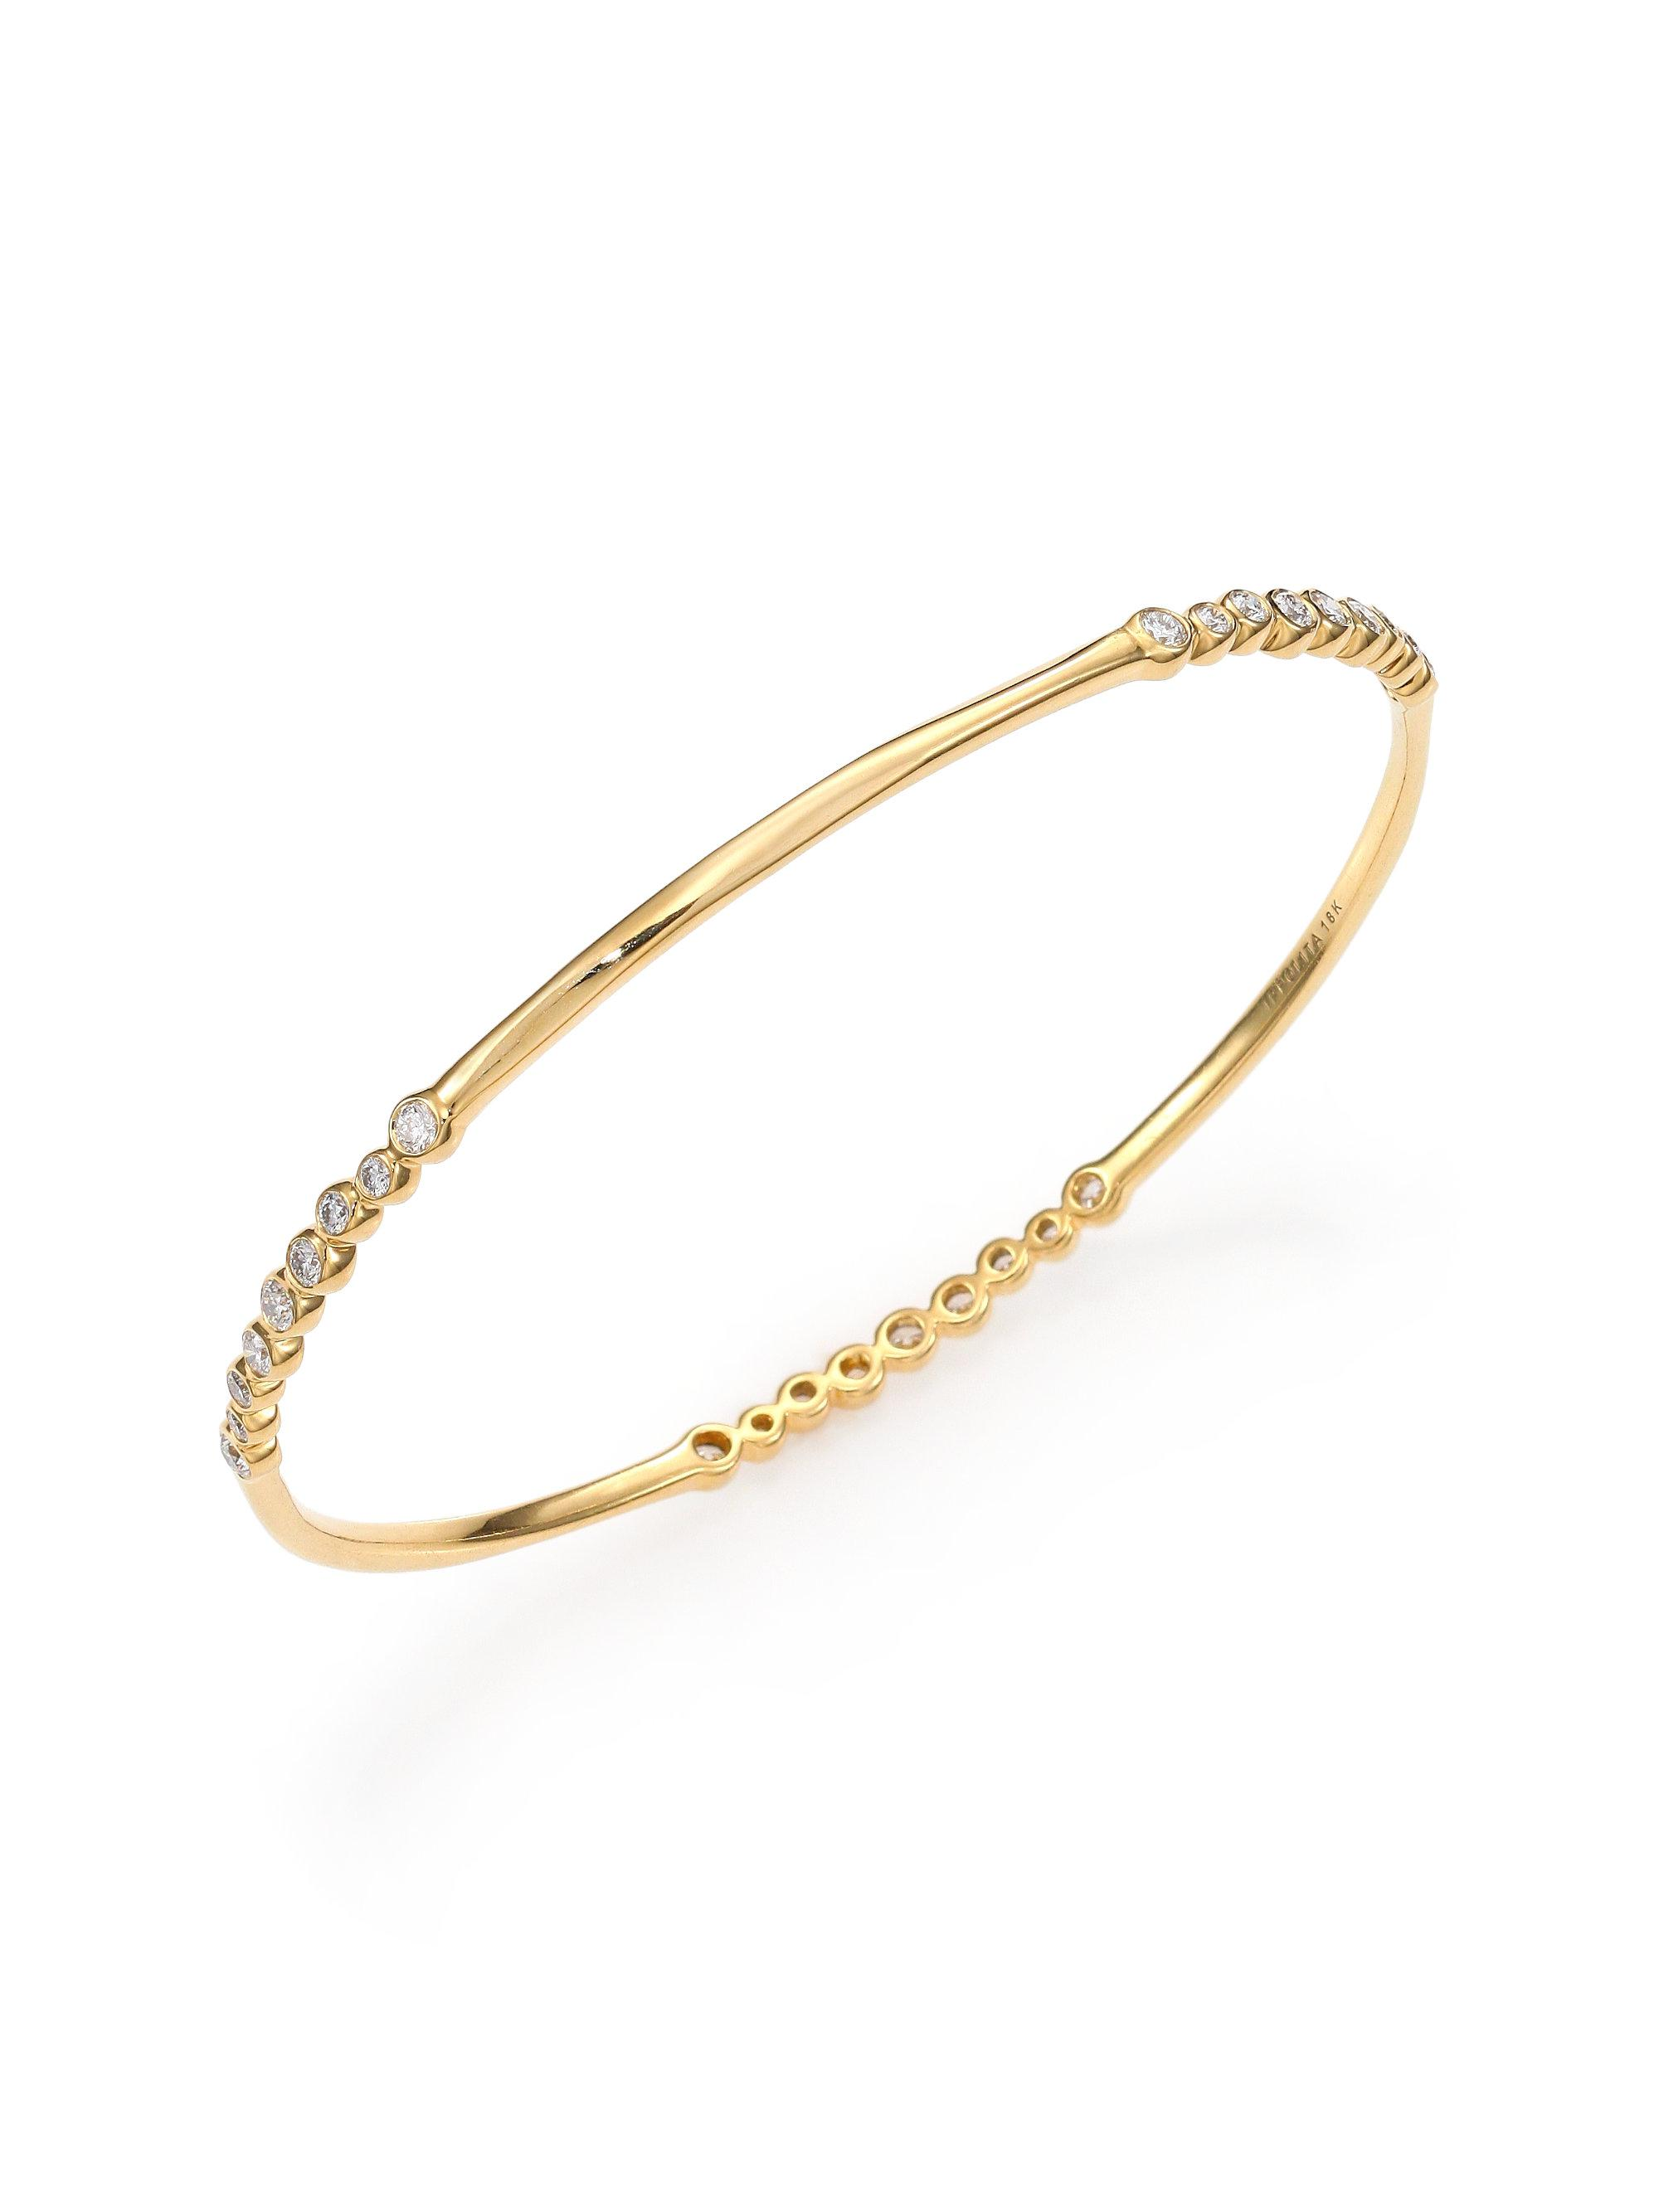 jewels j diamond set her minimalist tennis product gold finish il bracelet modern satin fullxfull r bezel